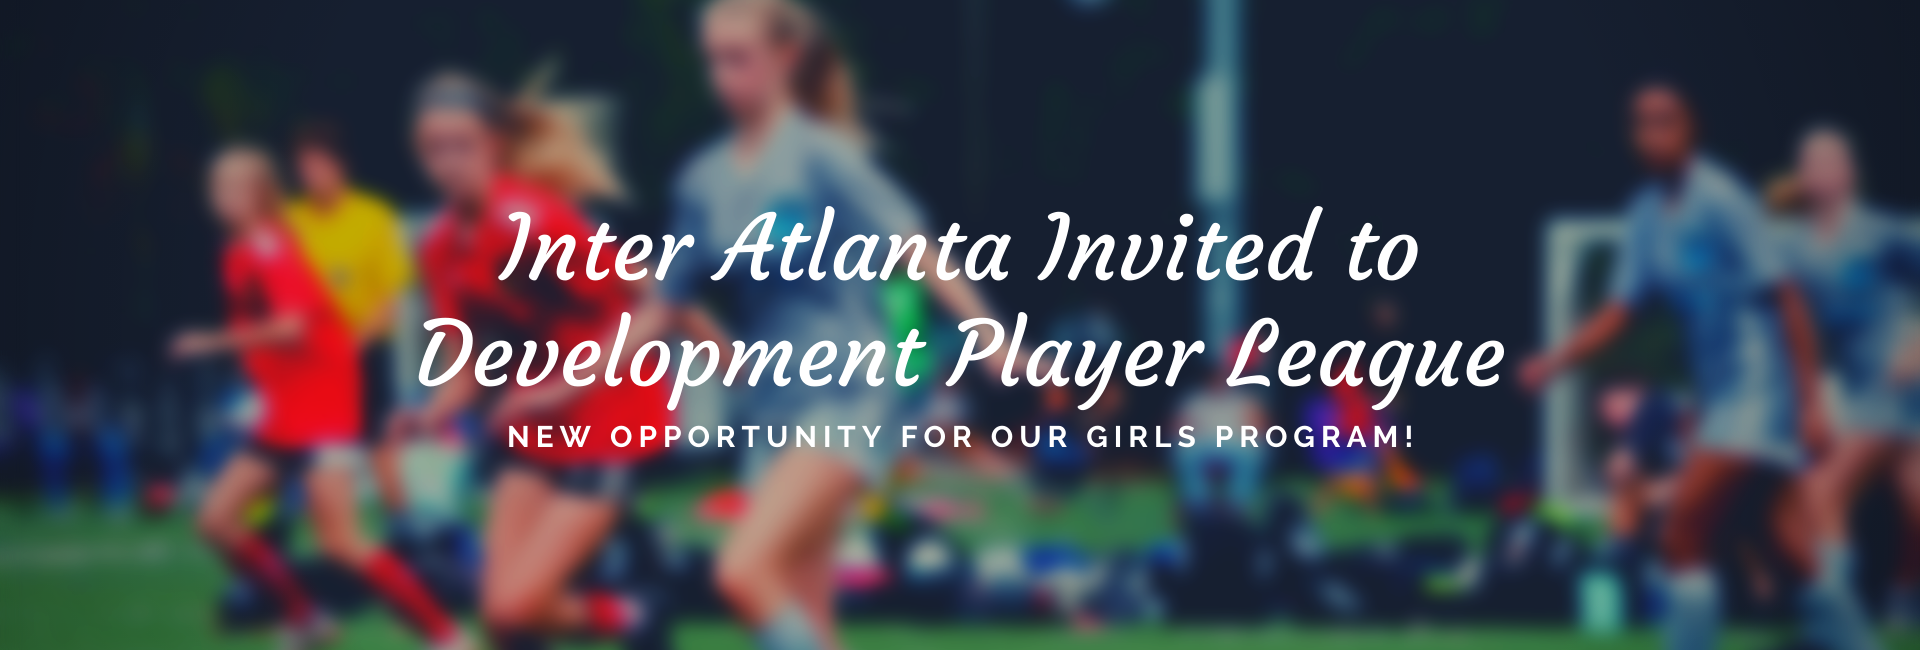 Inter Atlanta joins DPL, all female league